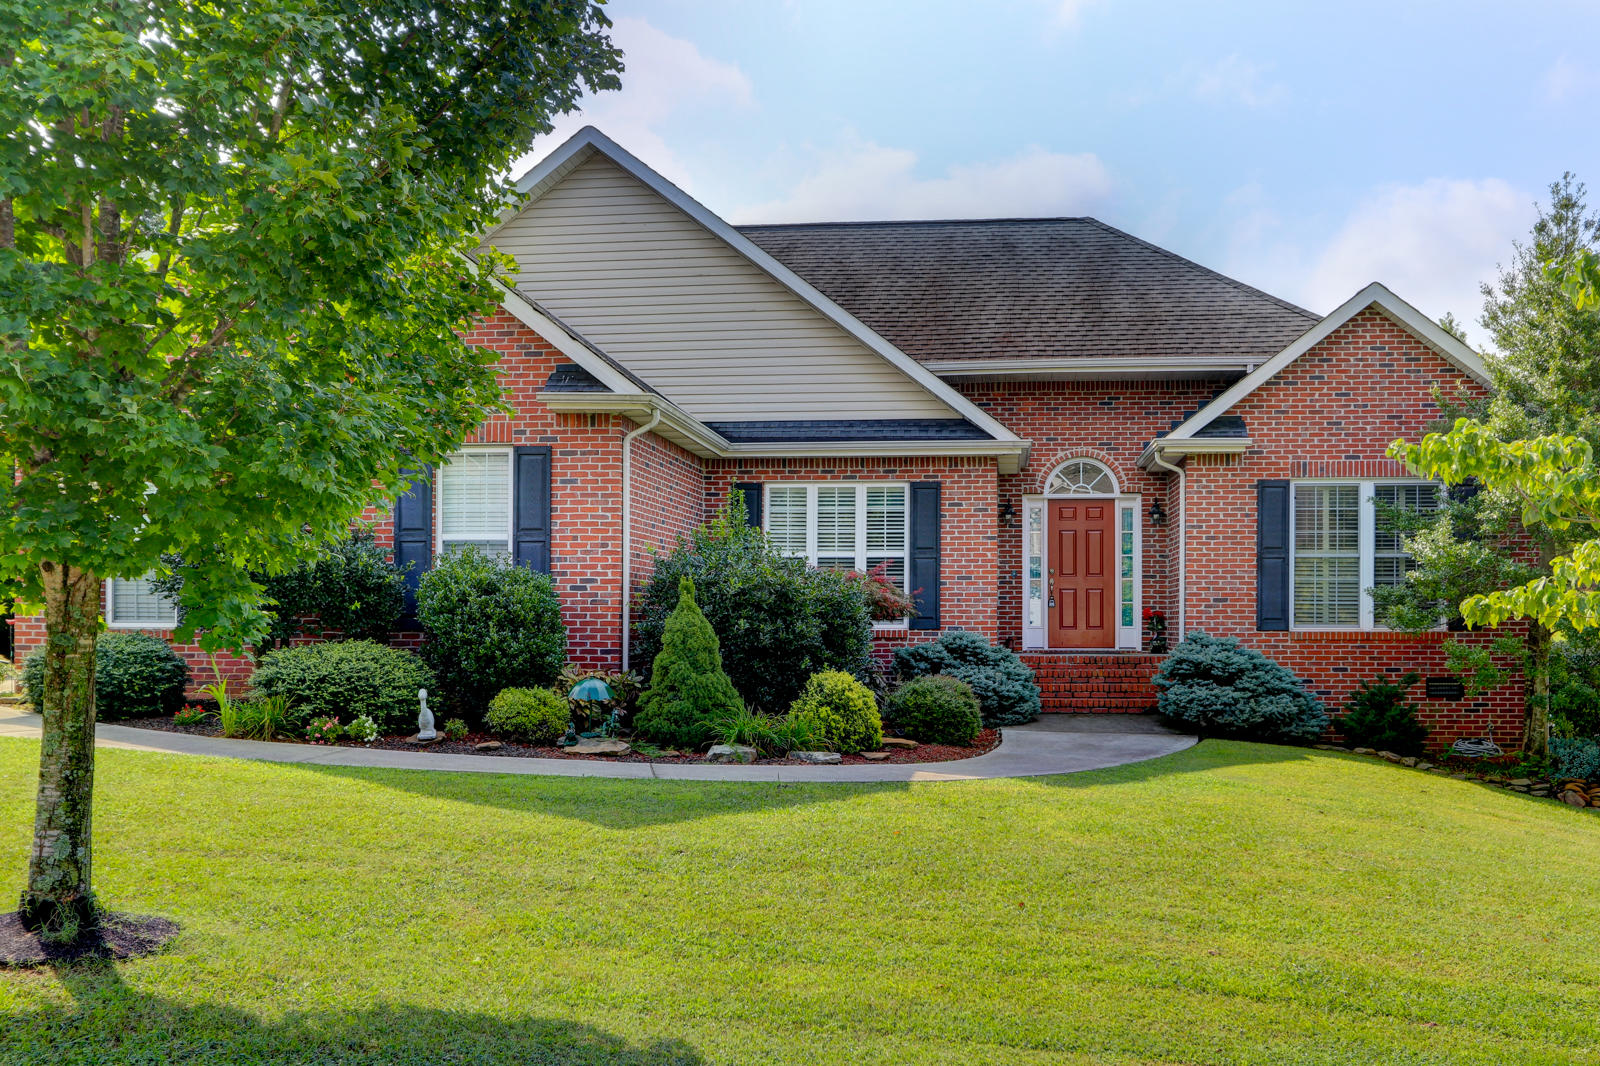 1853 FLEMING VALLEY LANE, KNOXVILLE, TN 37938